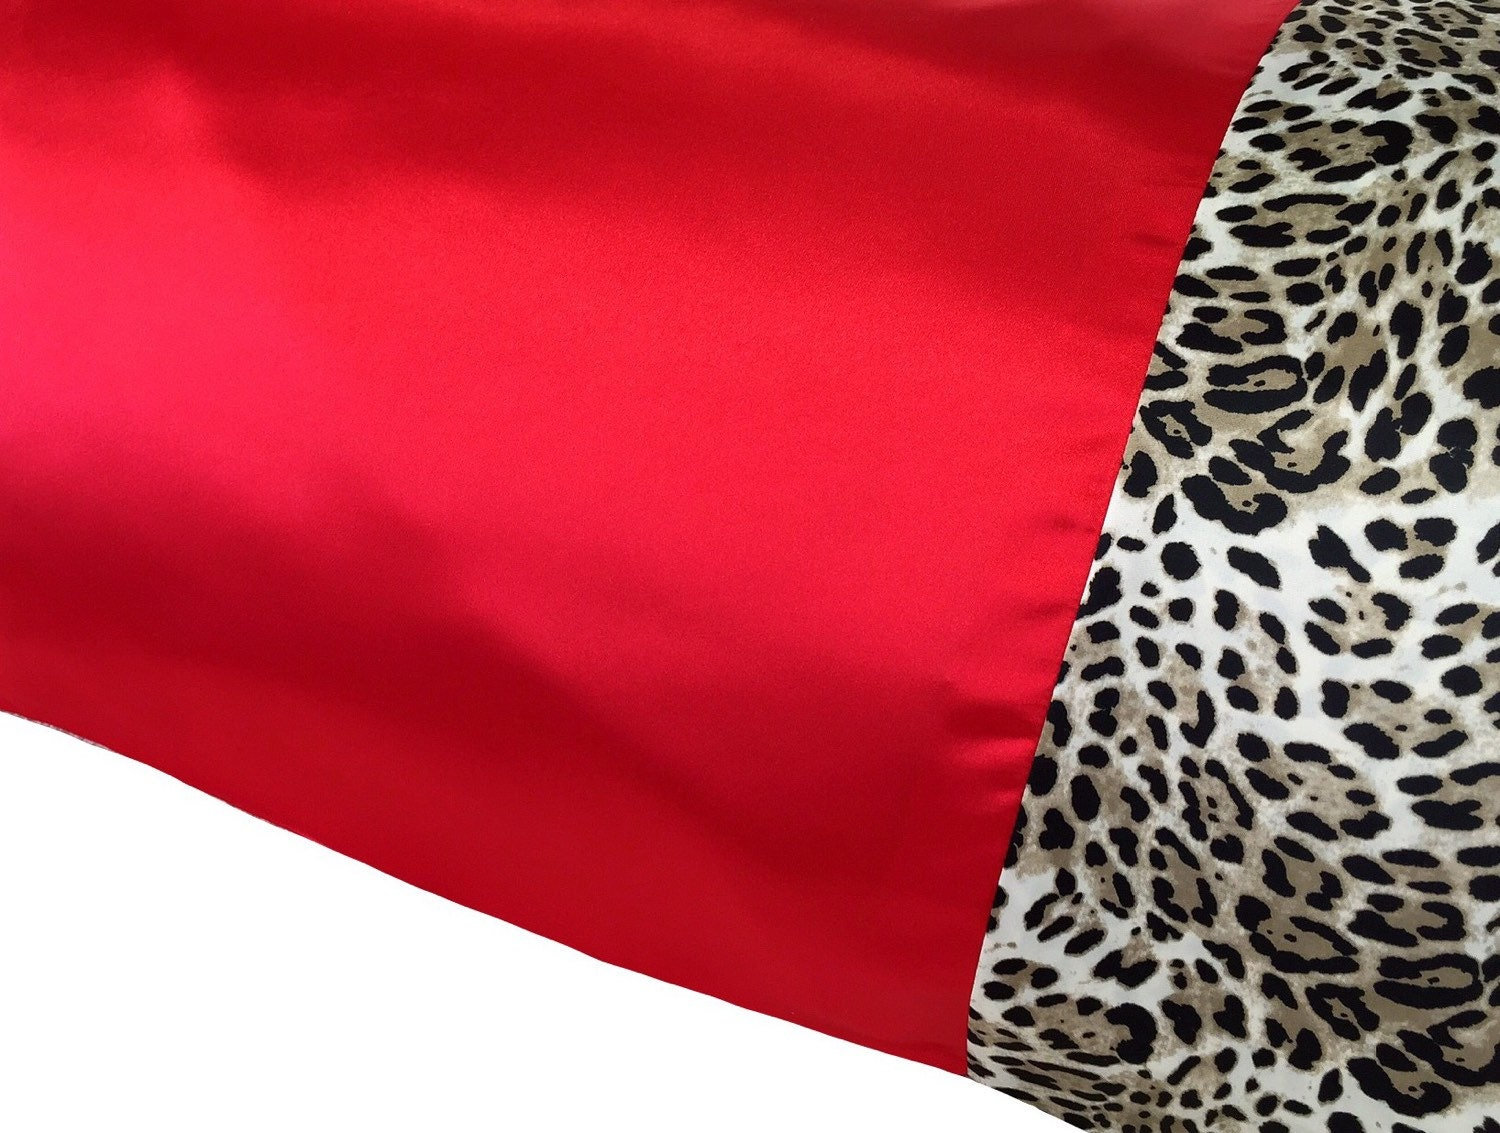 Leopard and red bedding - Red Leopard Satin Pillowcase Red Satin Pillow Case Snow Leopard Bedding Leopard Red Satin Red Bedding Leopard Pillow Case Satin Swank